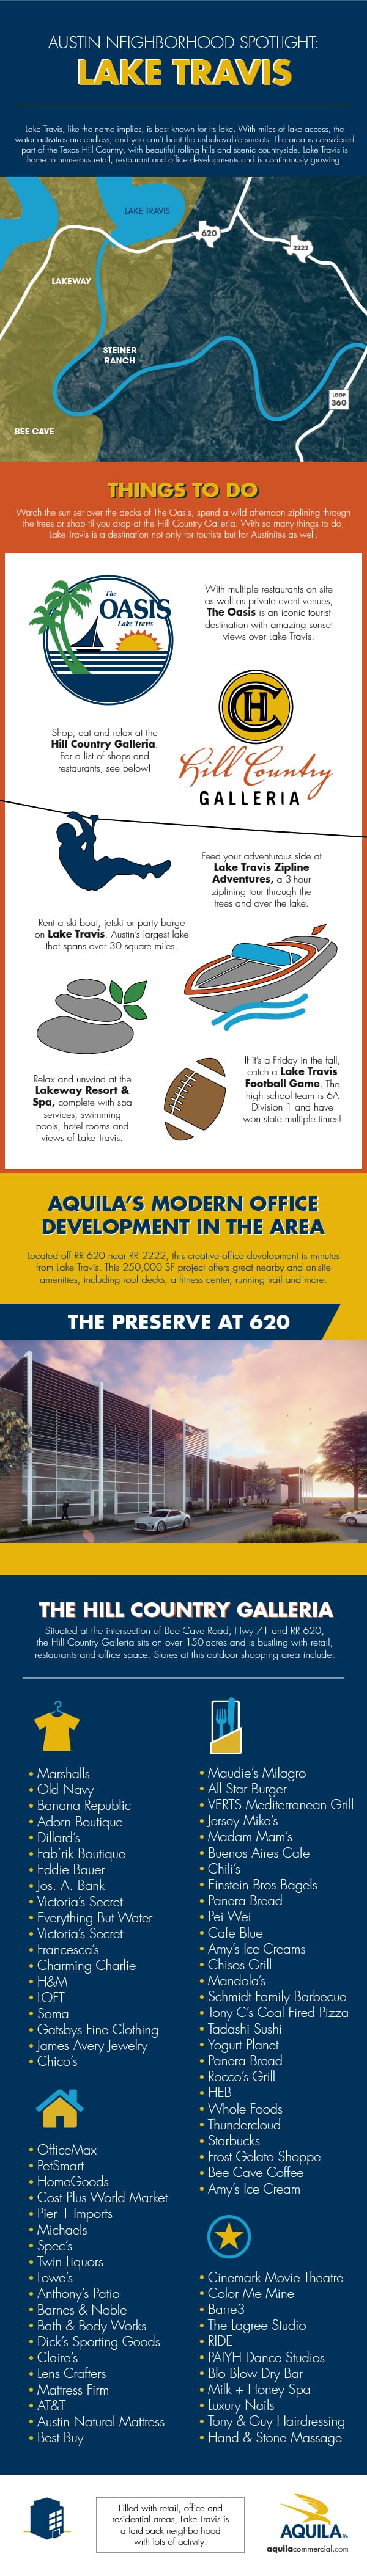 Lake Travis Infographic: What to do, where to eat, office developments